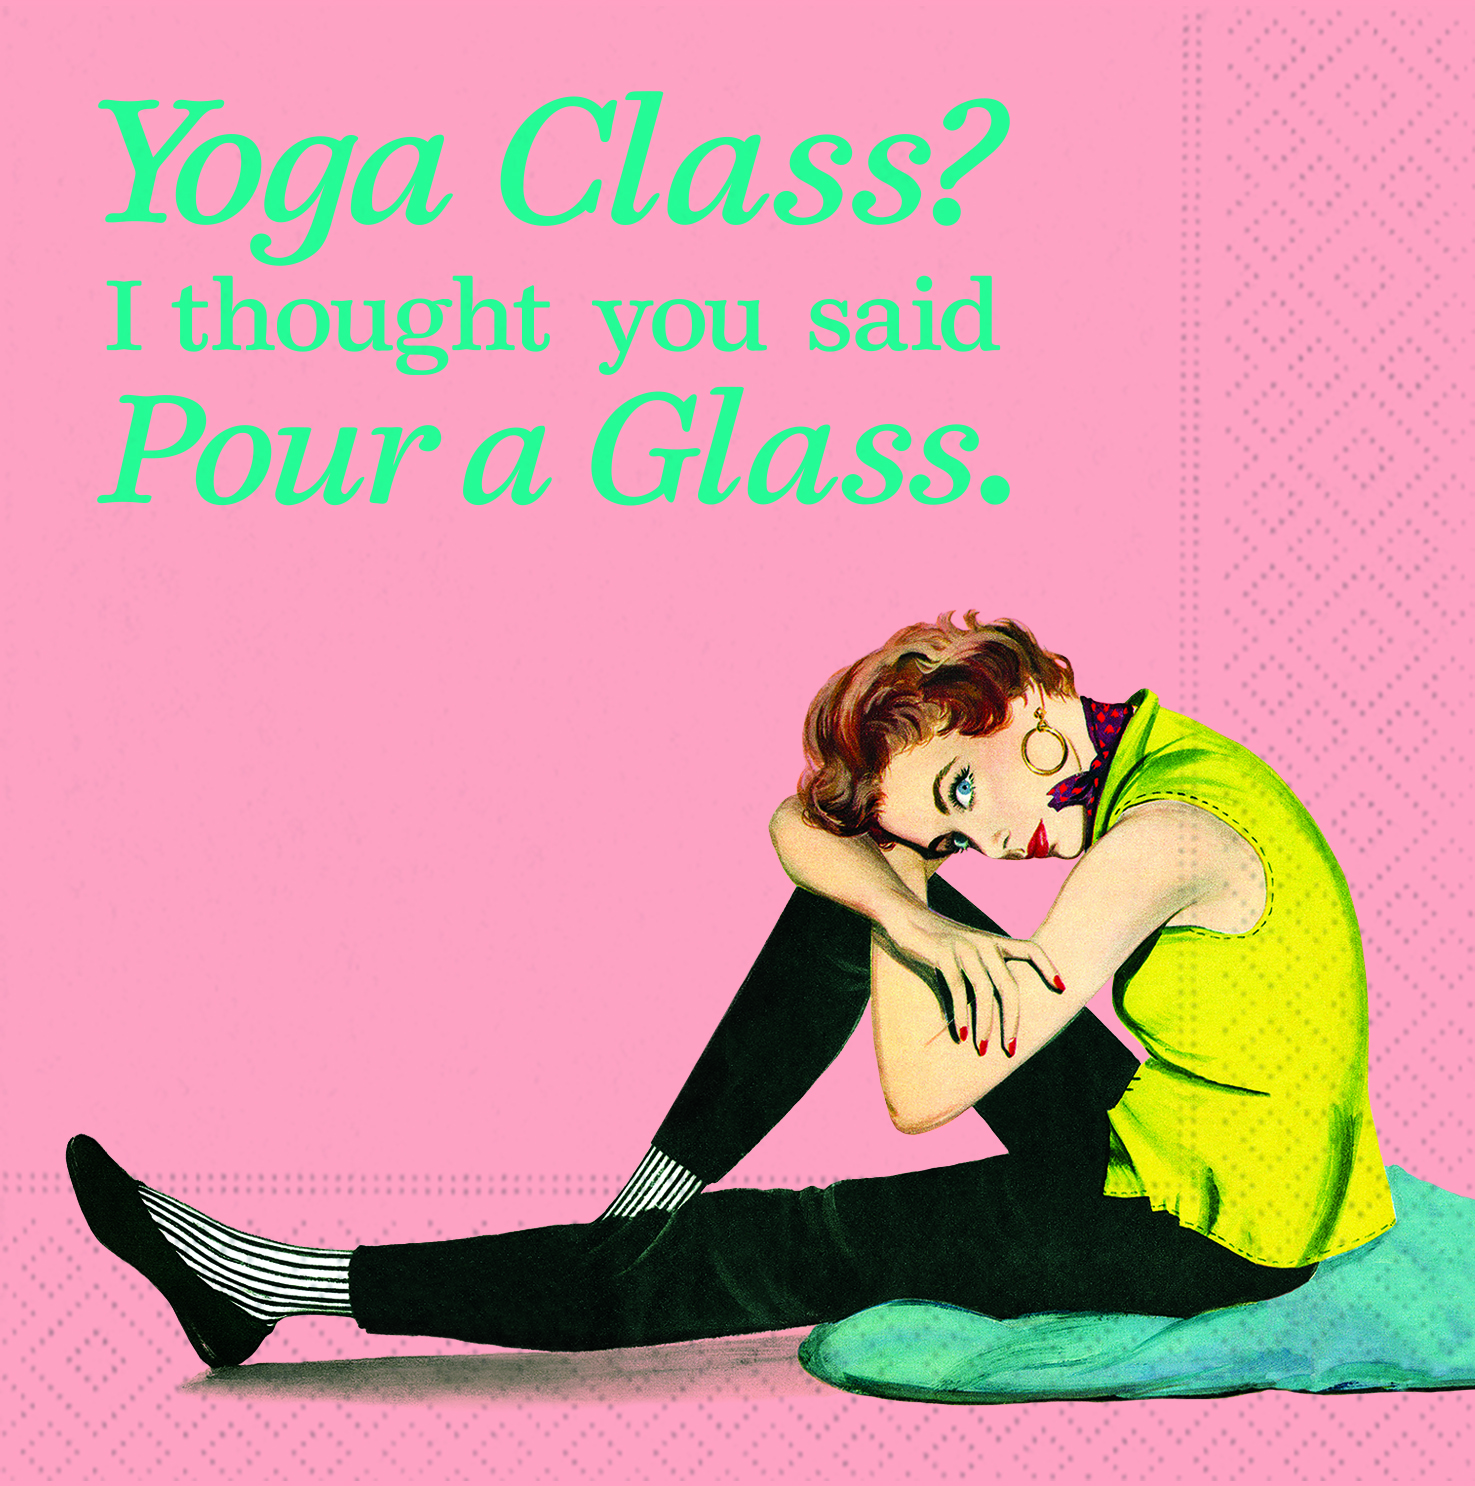 Yoga Class Pour A Glass Cocktail Napkins